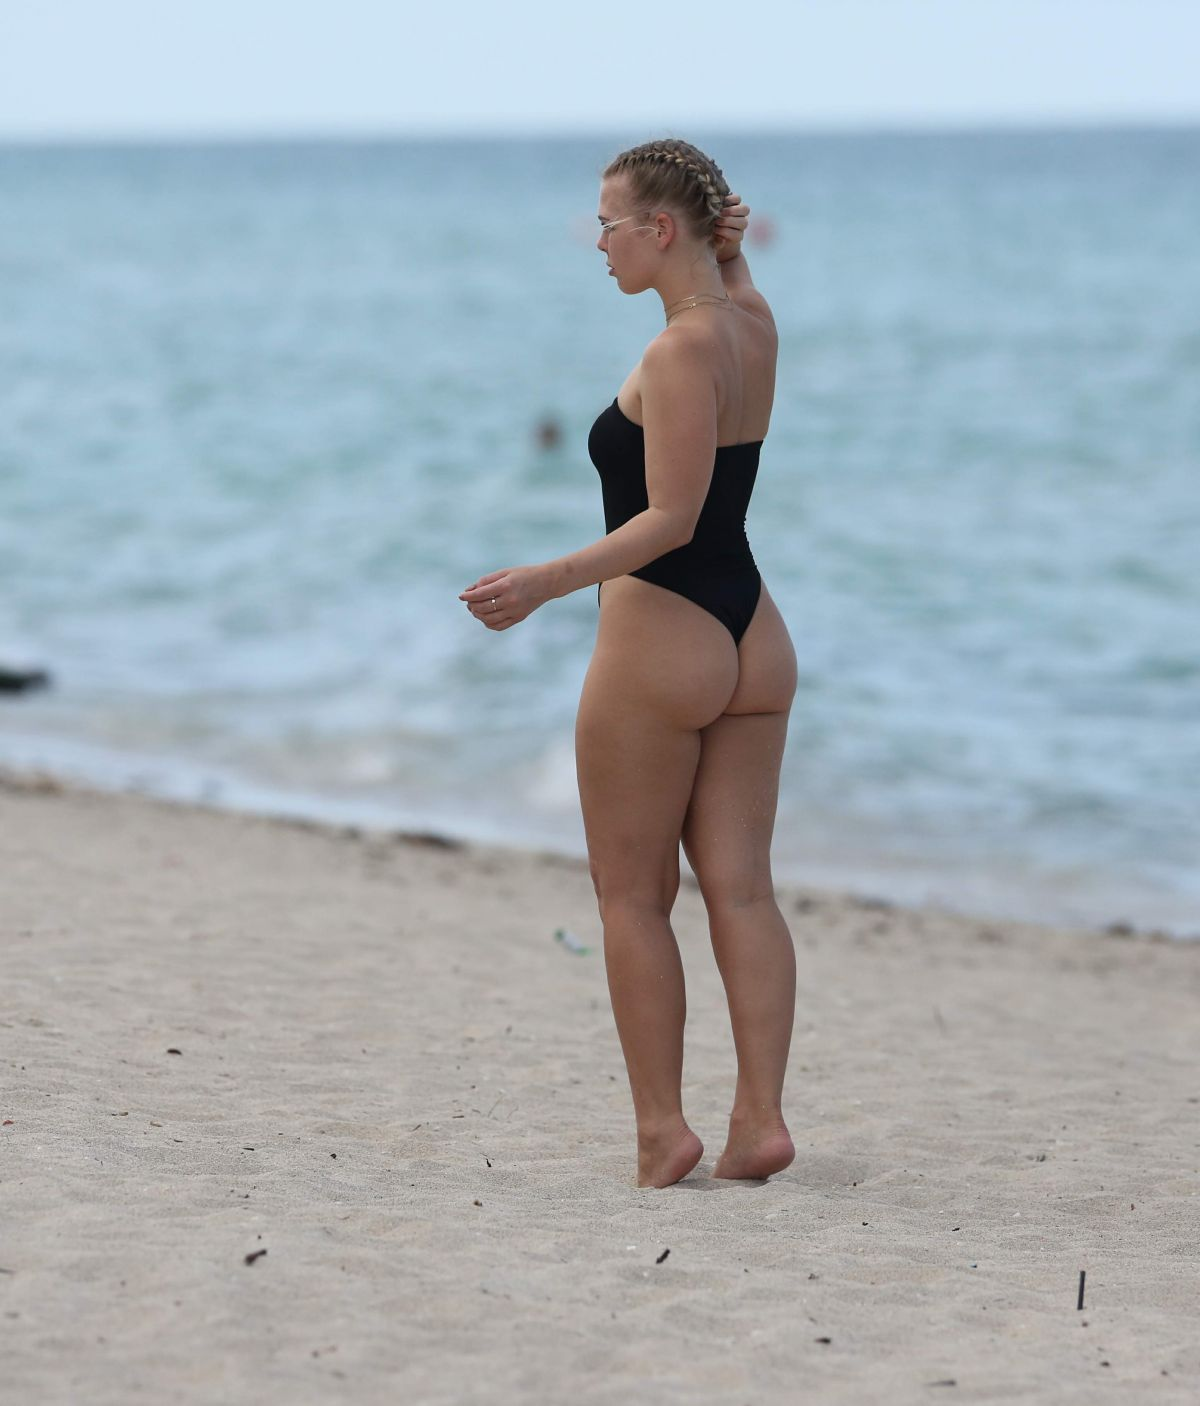 bianca elouise in miami shooting in the beach - celebzz